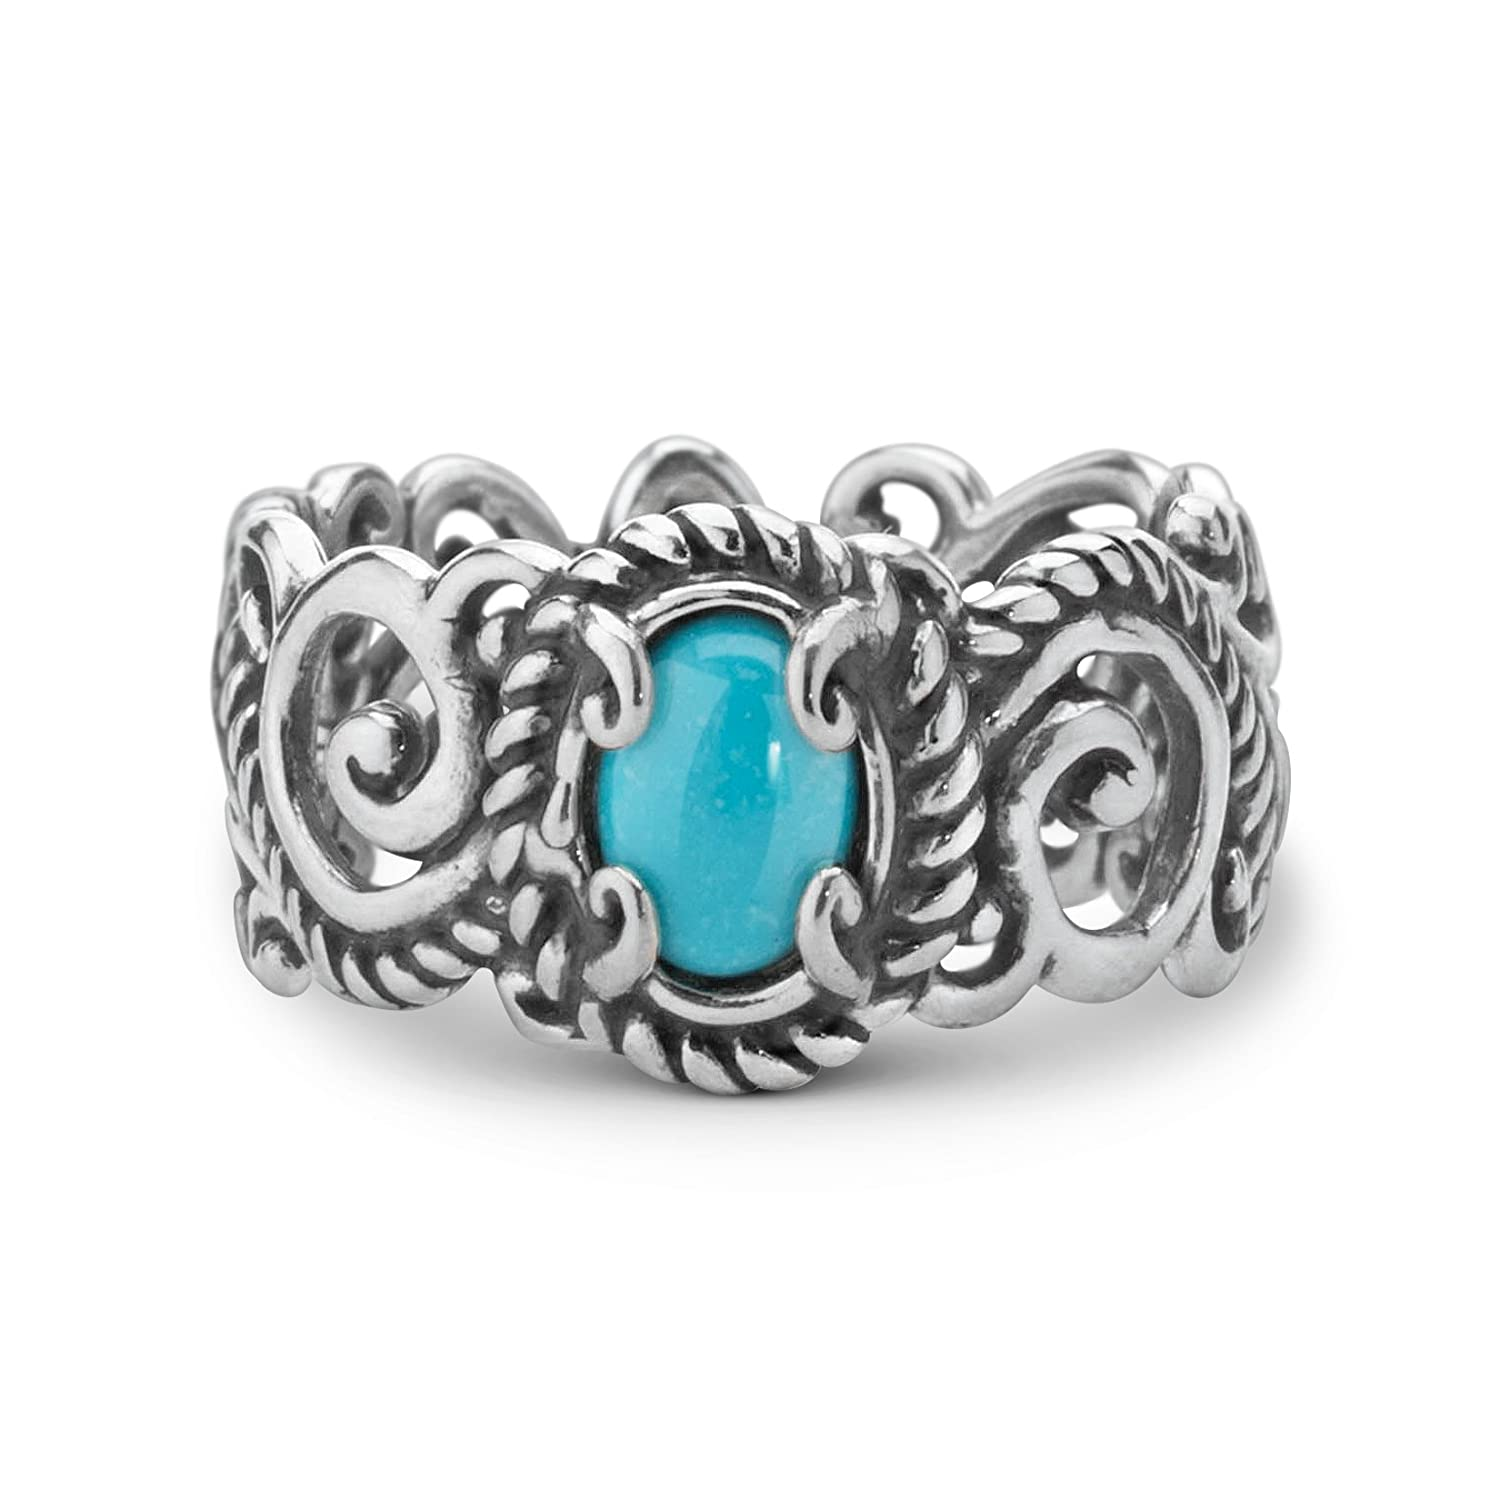 925 Silver SZ 5 thru 10 Gemstone Turquoise or Opal Band Ring Choice of 2 Colors Relios